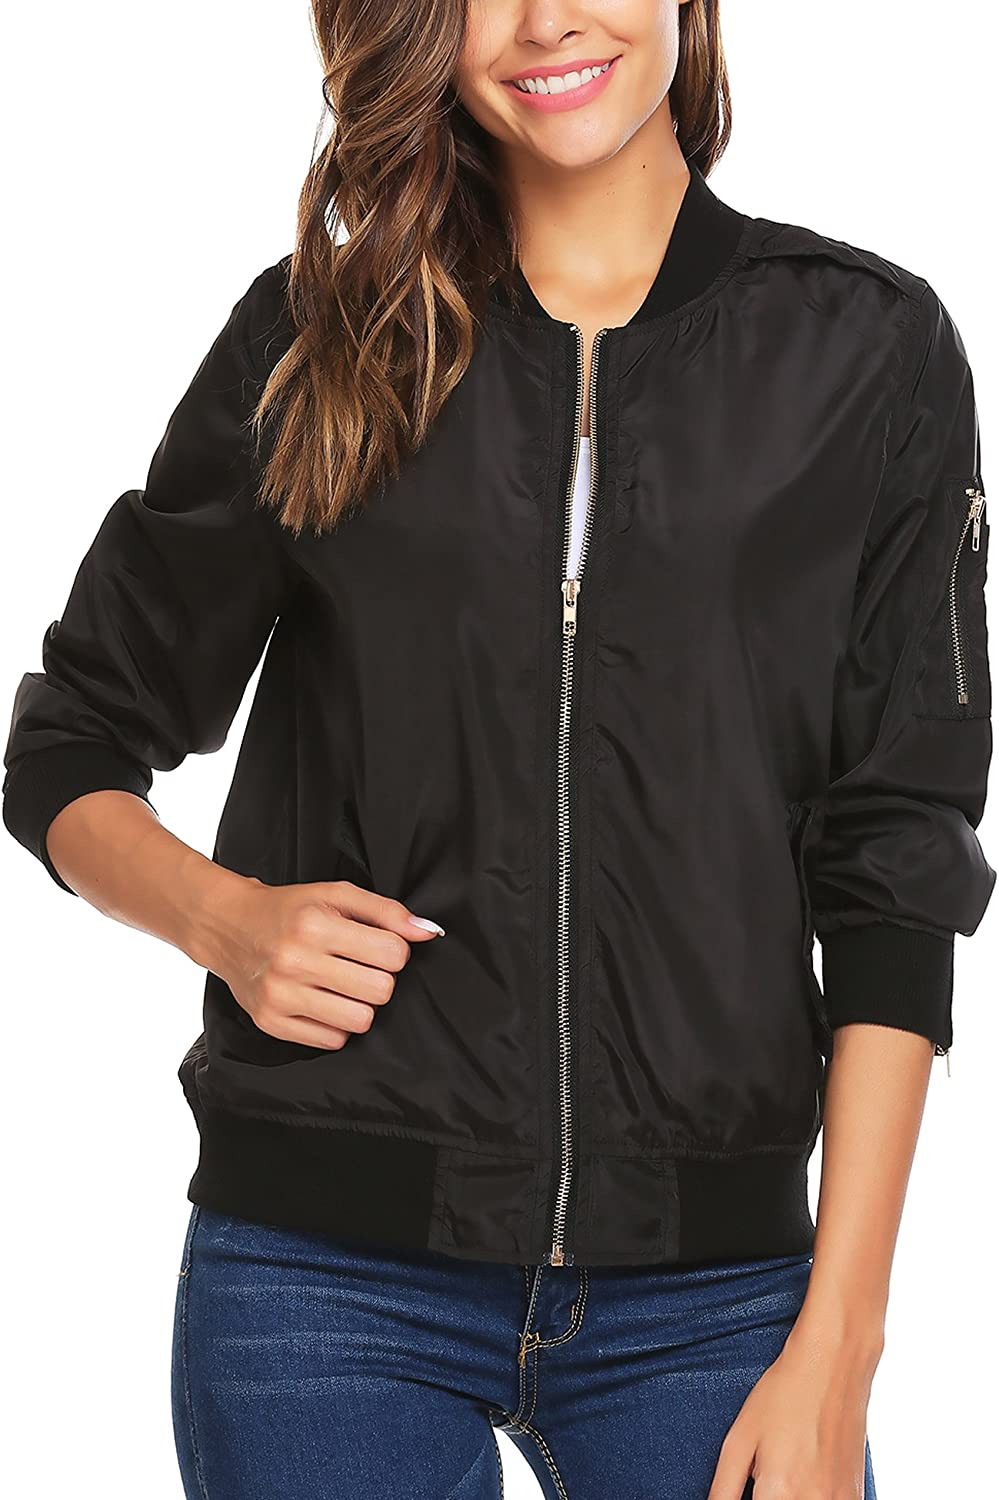 Beyove Women Long Sleeve Quilted Zip Up Jacket Short Bomber Jacket